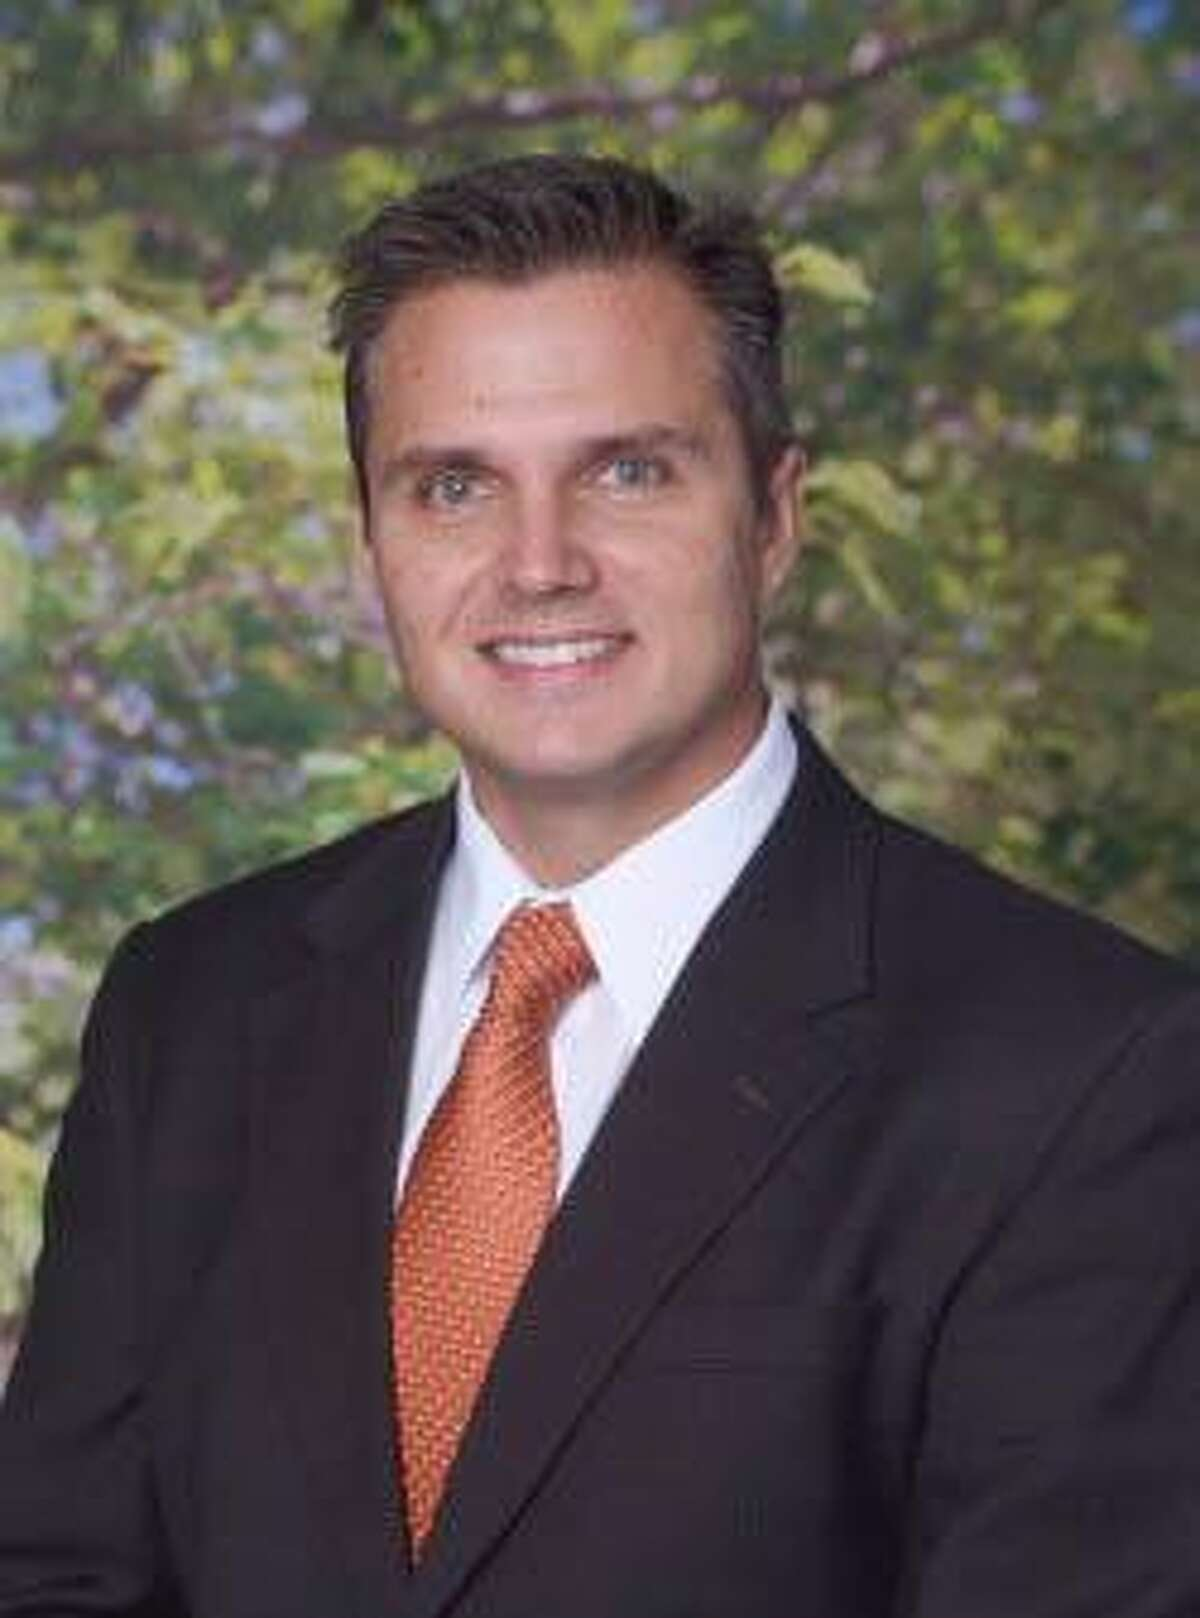 John Barile, the Brookfield Schools superintendent